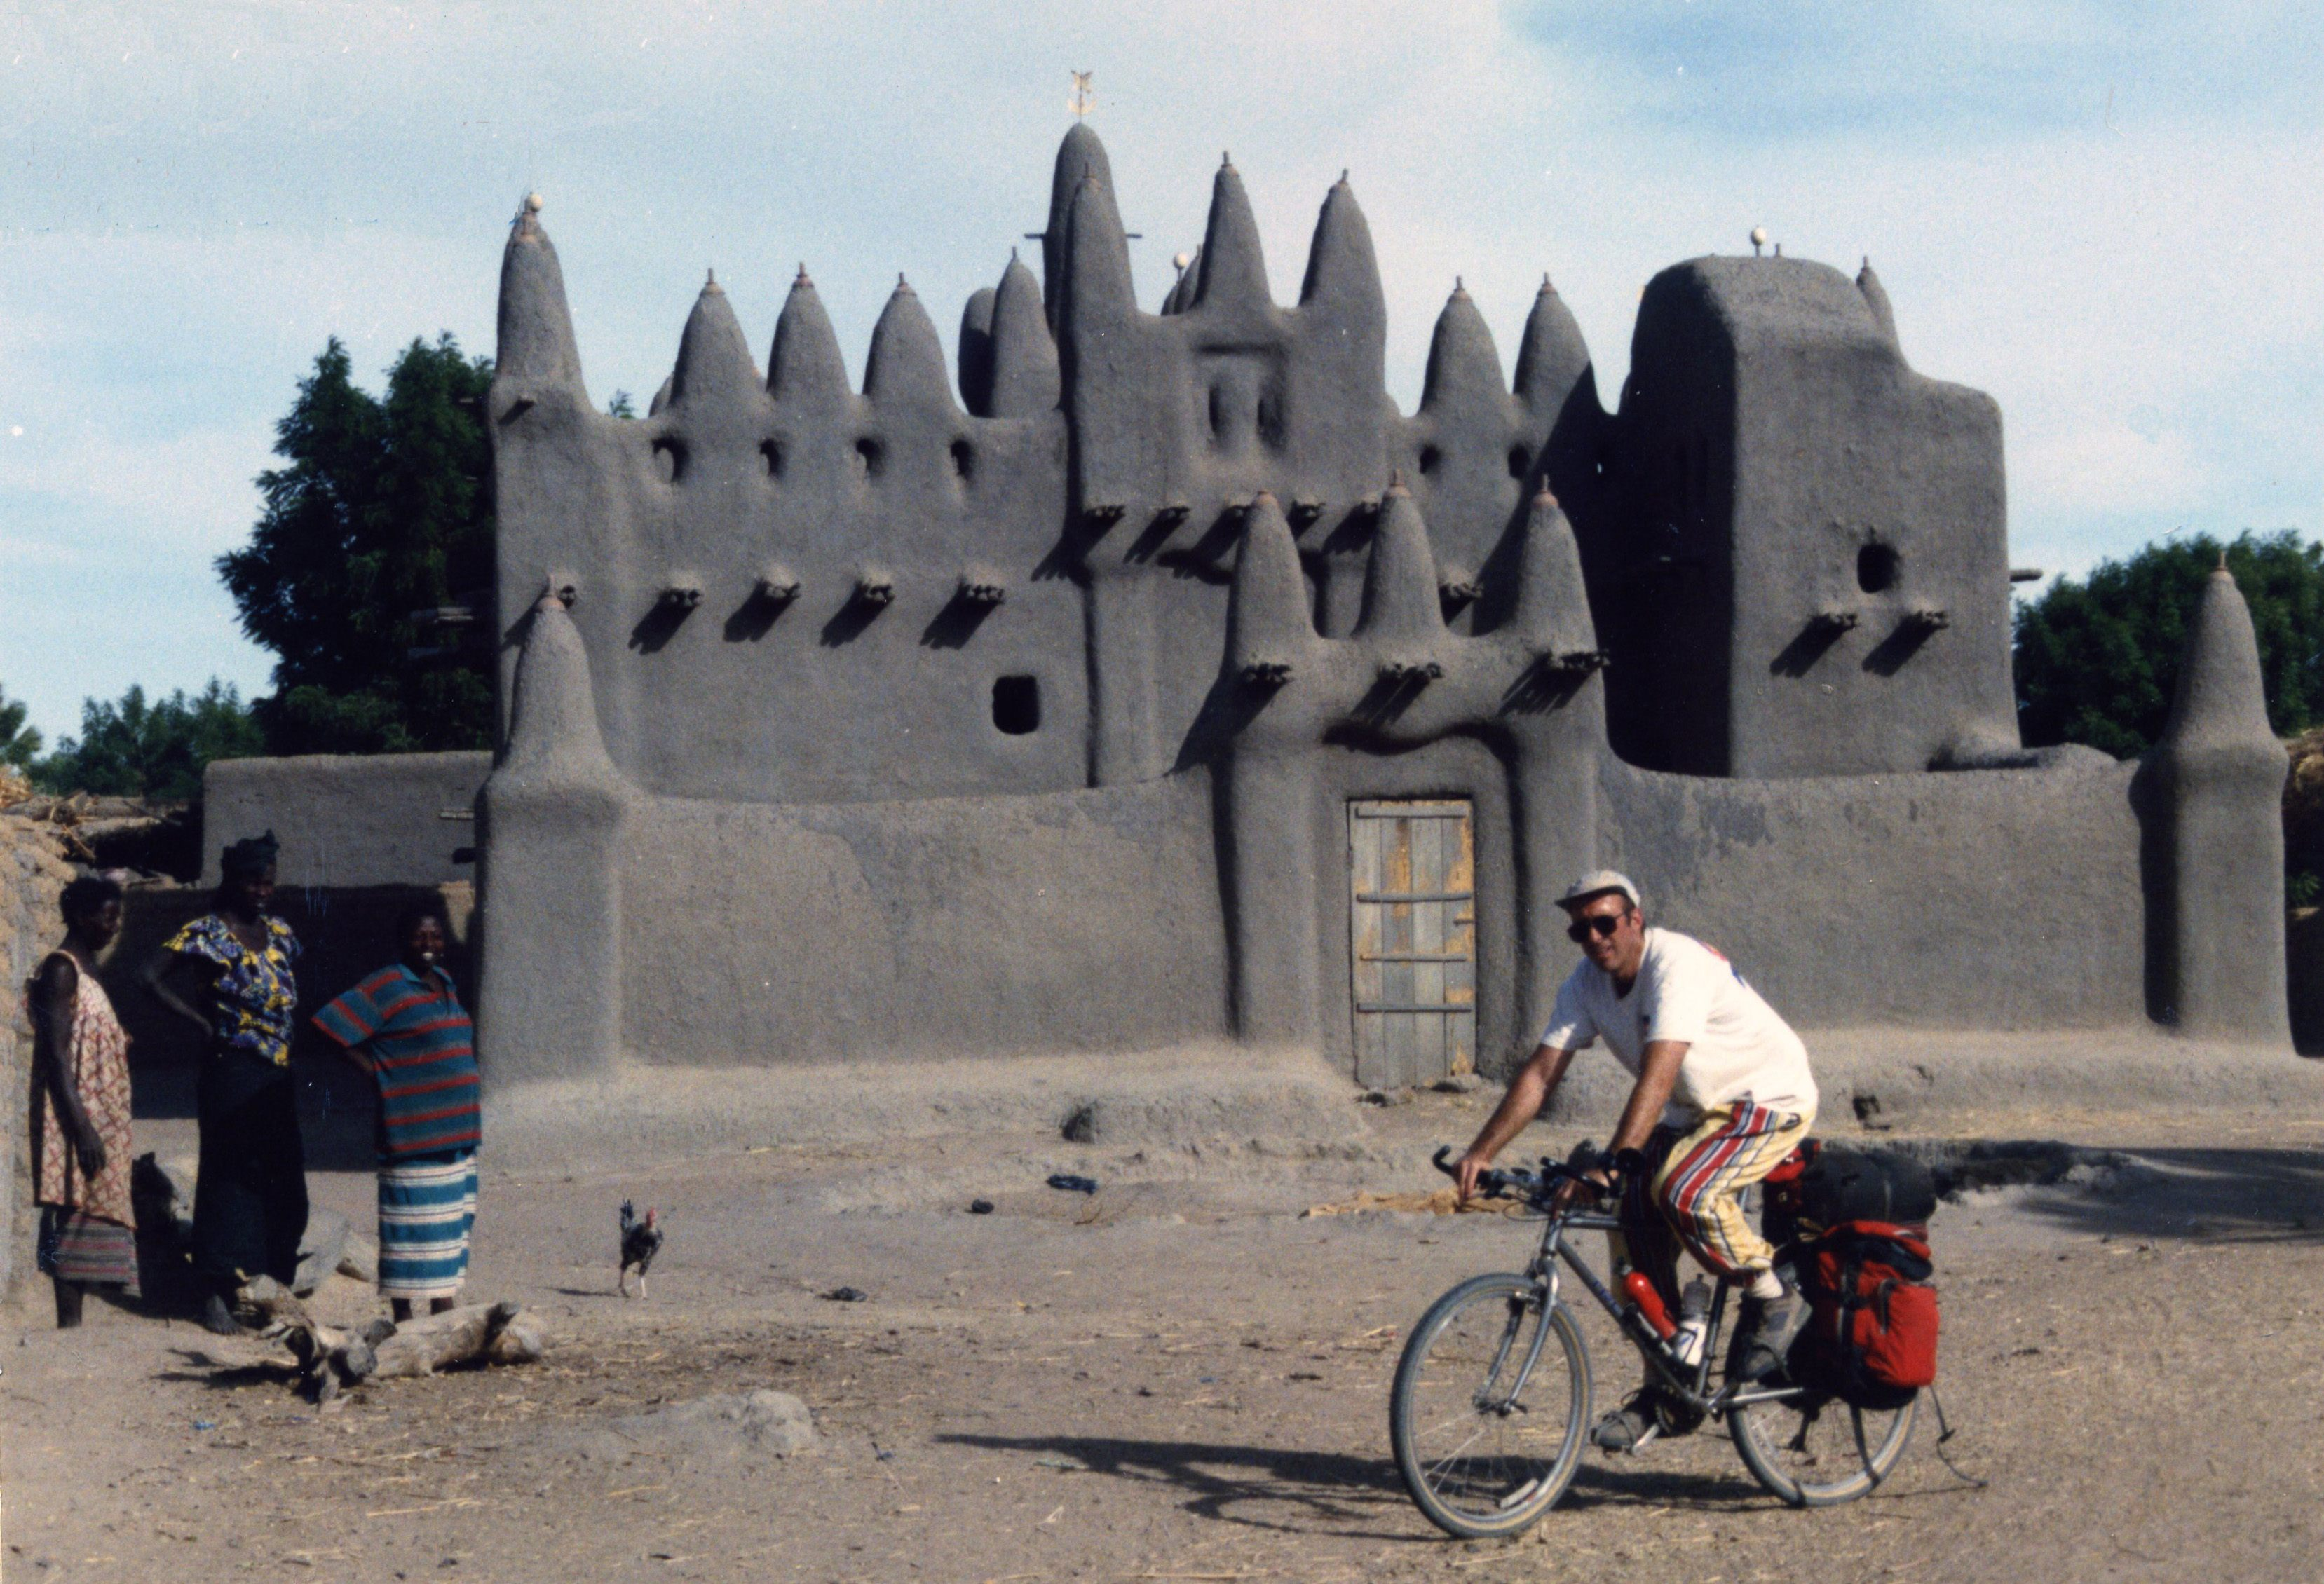 John cycling past a mud brick mosque in Mali in 1996.